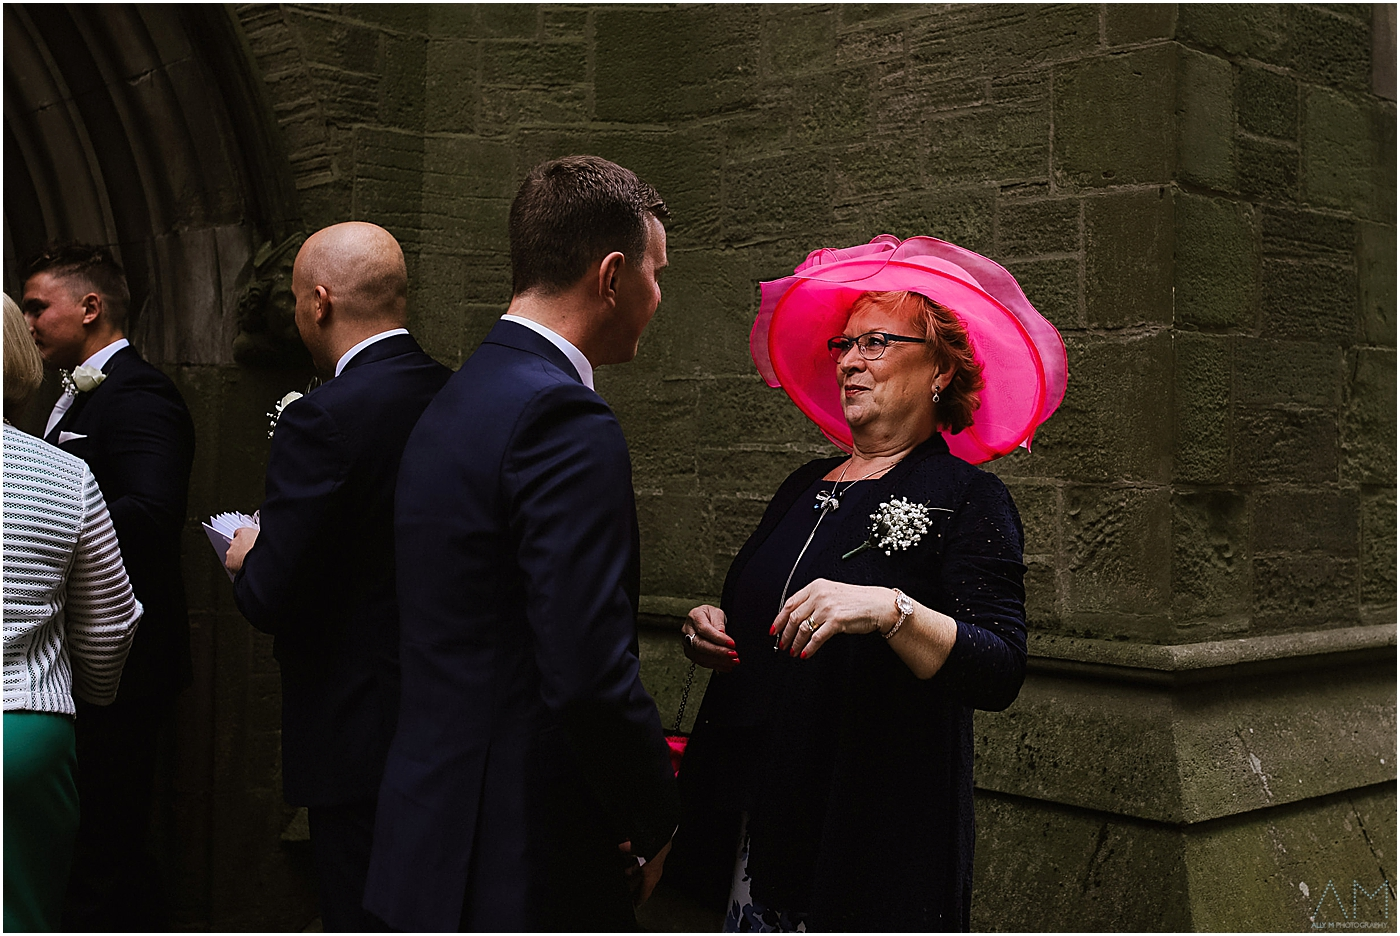 Lady in pink hat outside church